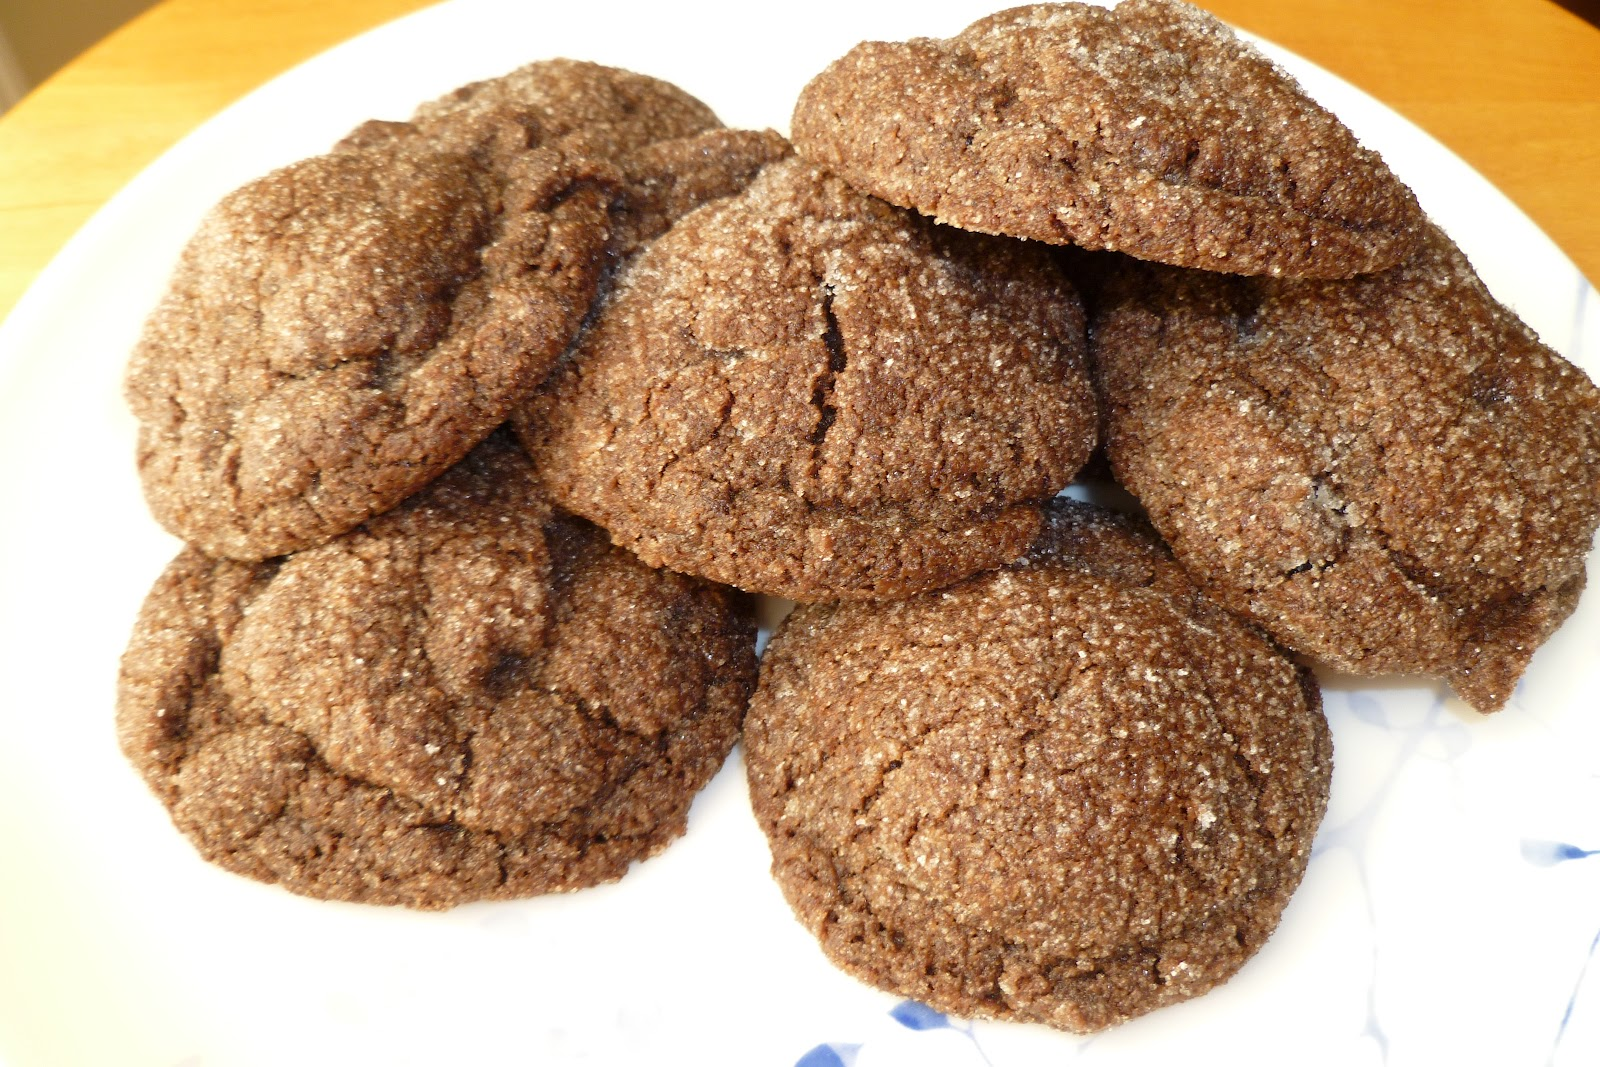 The Pastry Chef's Baking: Chocolate Sugar Cookies